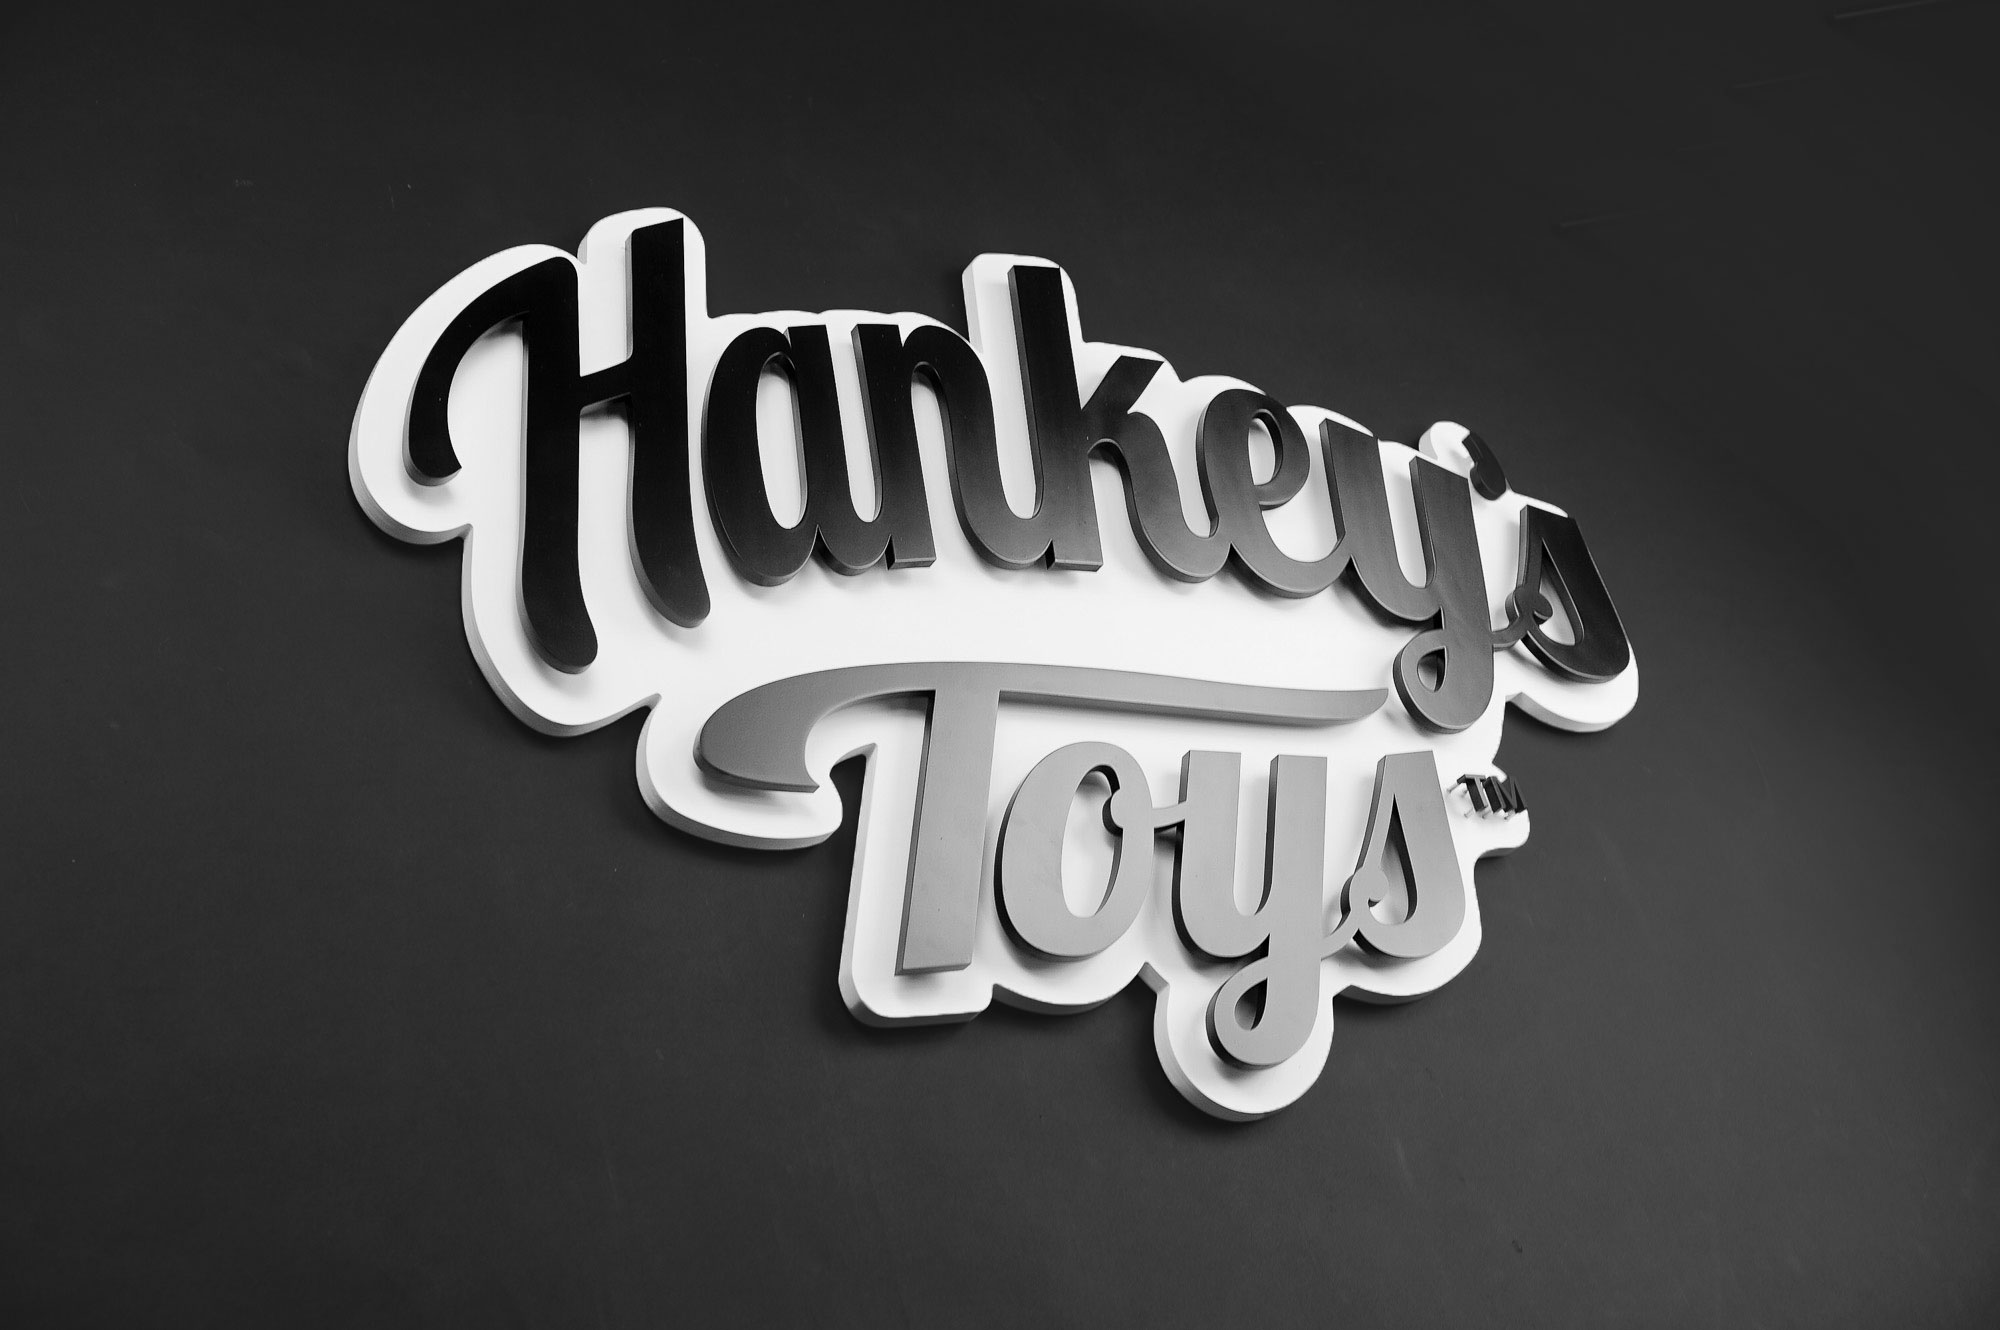 Black and white raised cutout script logo for Mr. Hankey's Toys, maker of handmade adult sex toys.